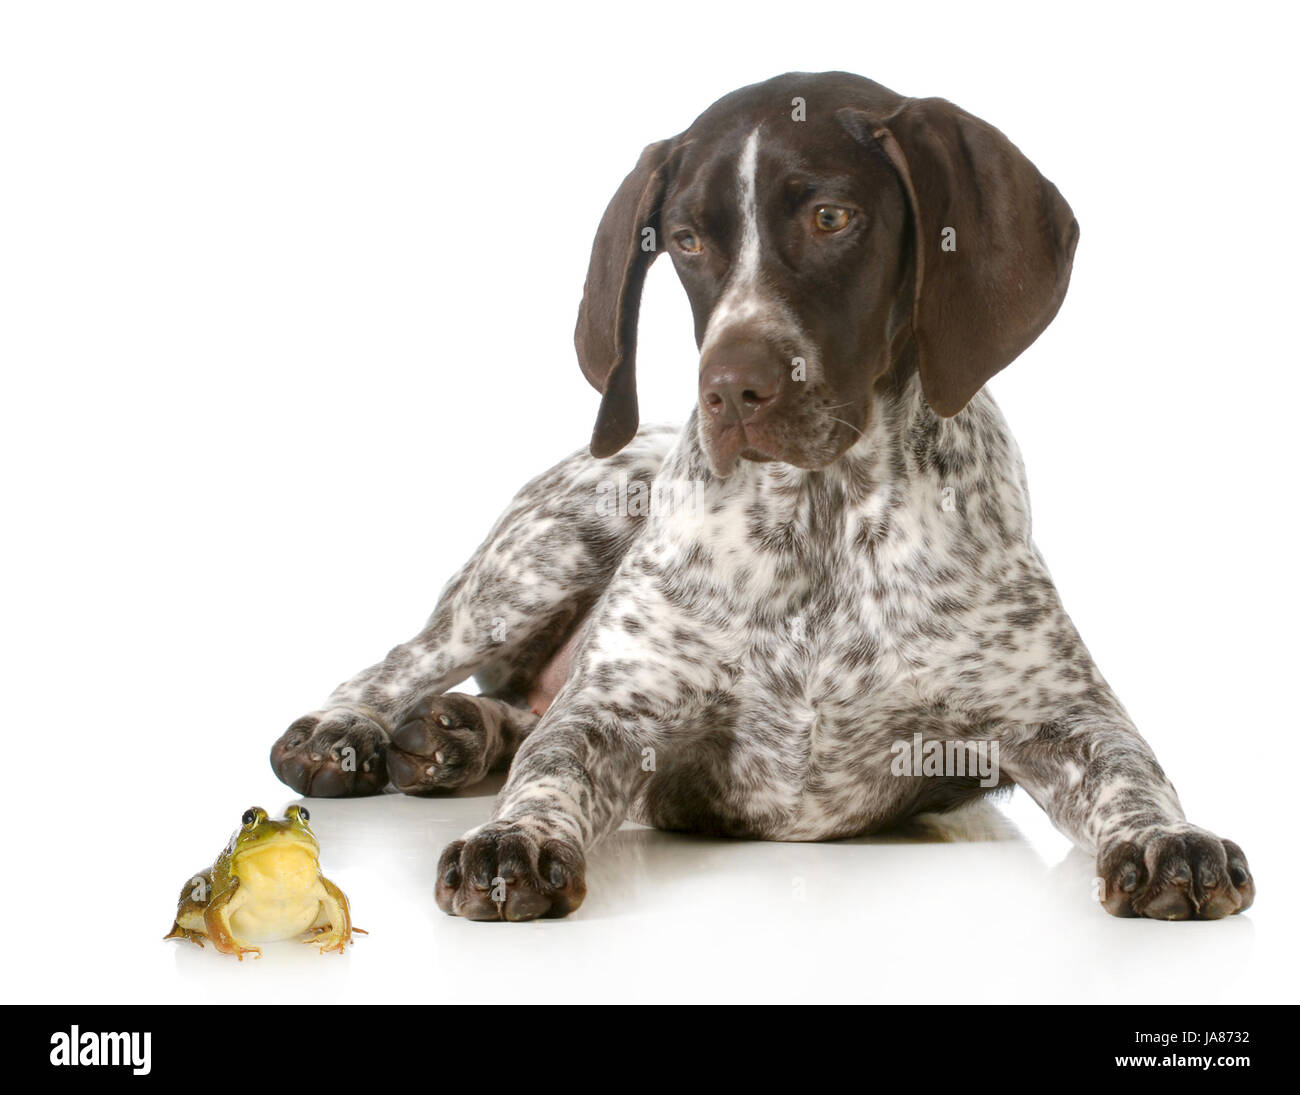 dog and a bullfrog - german shorthaired pointer looking at bullfrog isolated on white background - Stock Image